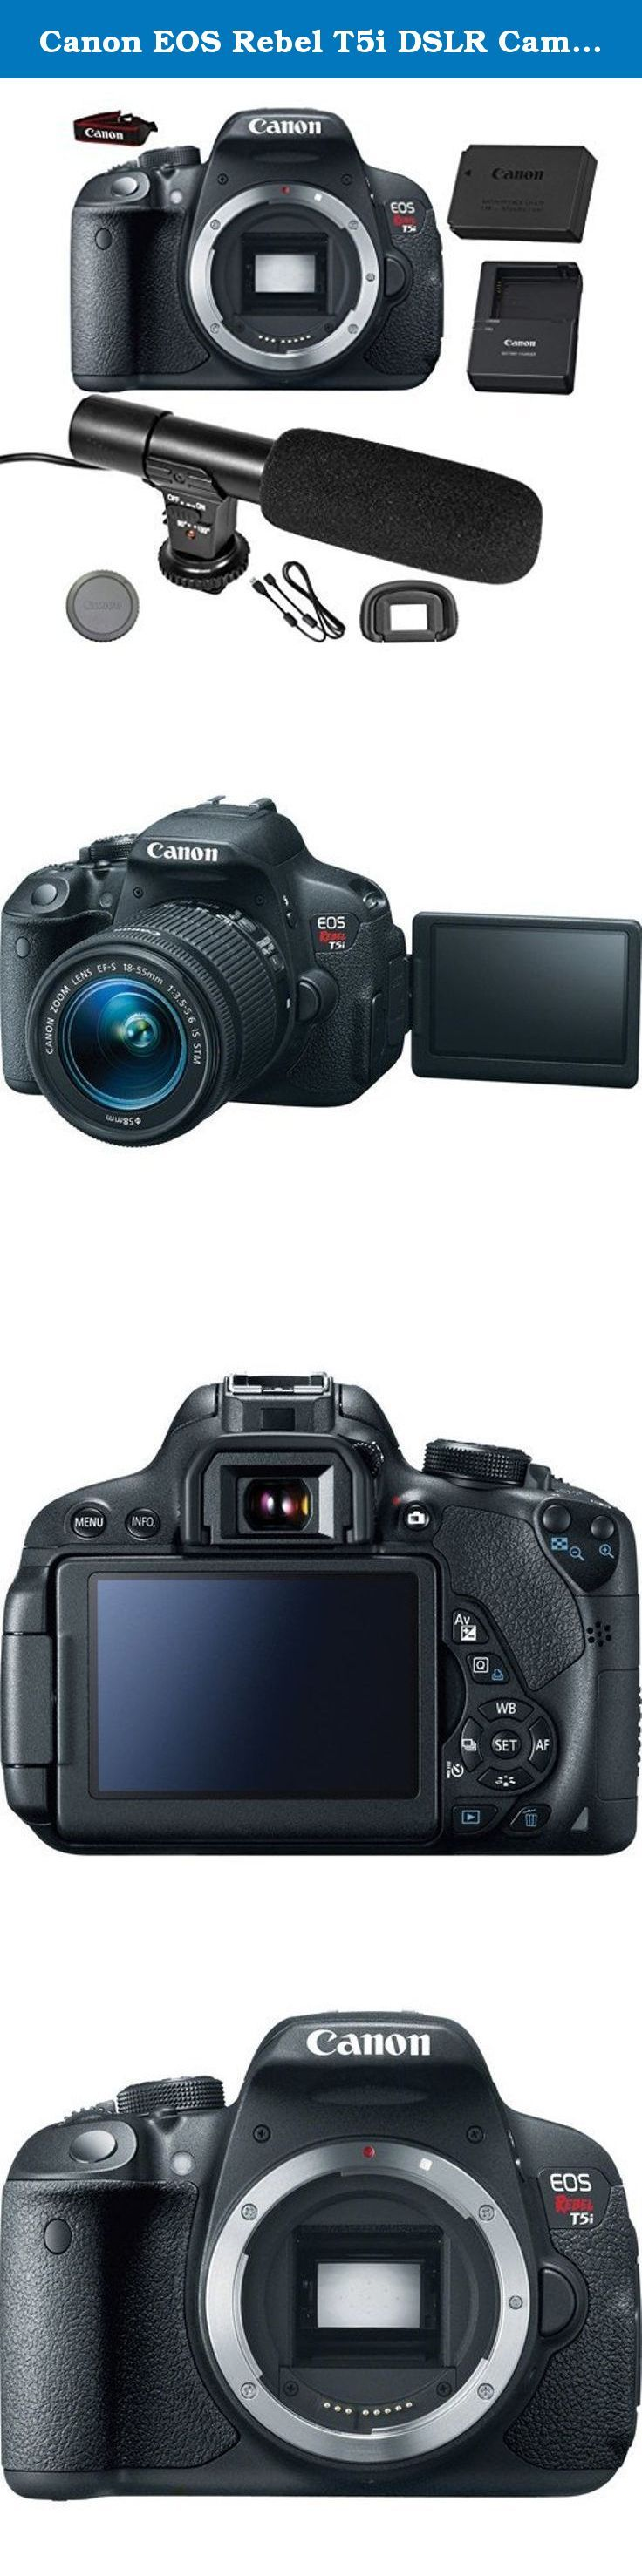 Canon EOS Rebel T5i DSLR Camera (Body Only) + On-Camera Shotgun Microphone - International Version. This GracePhotoNY bundle includes : Canon EOS Rebel T5i DSLR Camera (Body Only) On-Camera Shotgun Microphone LP-E8 Rechargeable Lithium-Ion Battery Pack (7.2V, 1120mAh) Battery Charger LC-E12 for Battery Pack LP-E12 RF-3 Body Cap for Canon EOS Cameras Eyecup Ef for Digital Rebel Cameras EW-300D Wide Strap Interface Cable EOS Digital Solution Disk .